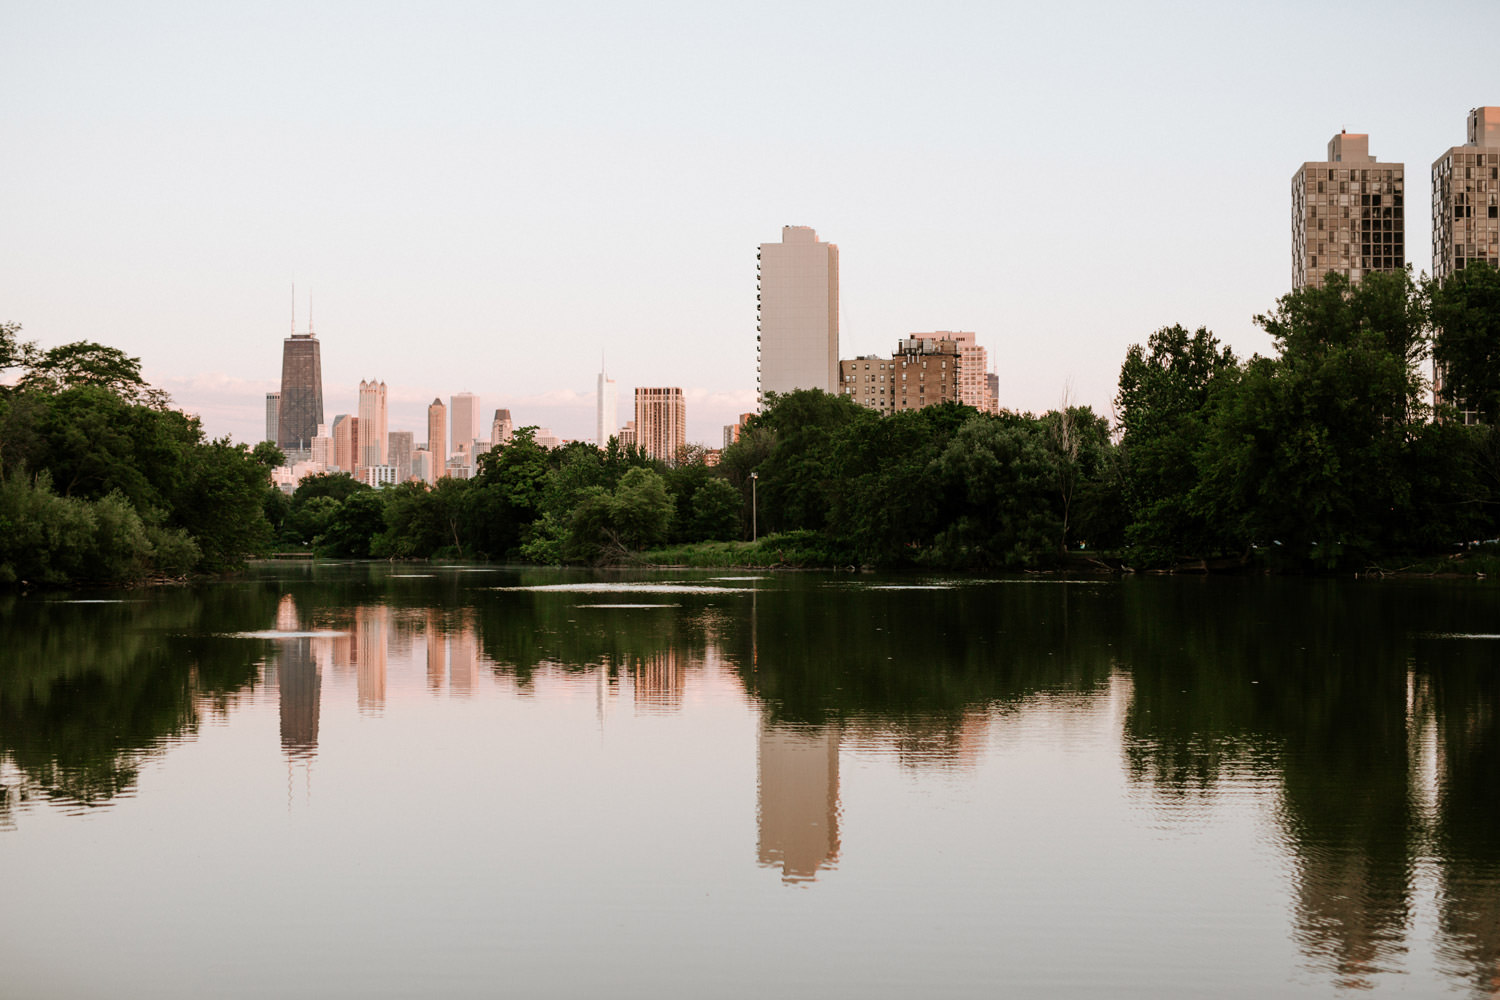 View of the North Pond in Lincoln park take during the engagement shoot.